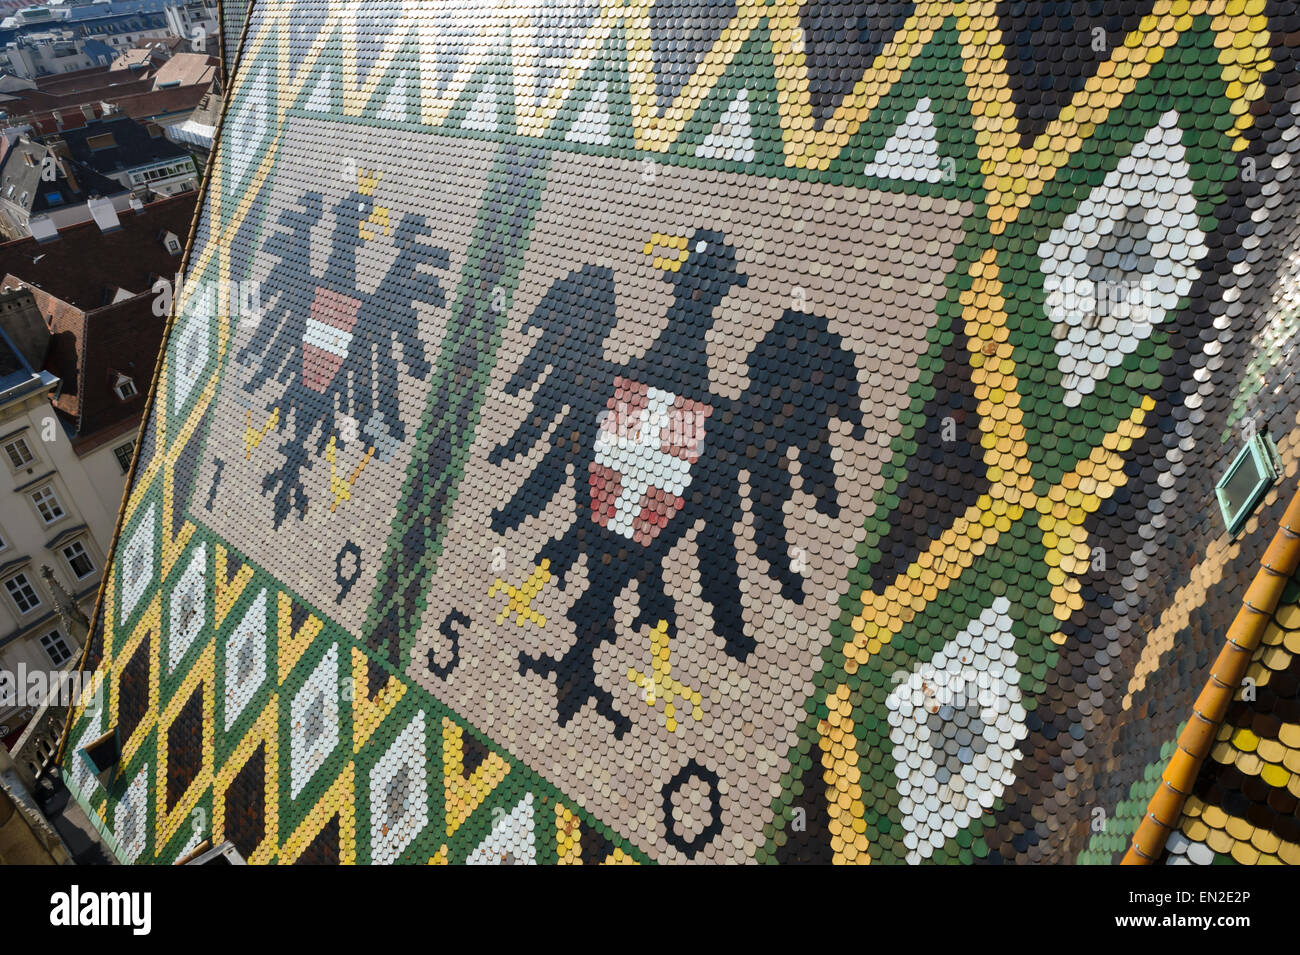 The Colorful Pattern Mosaic Tiles And Eagle Symbols On The Rooftop